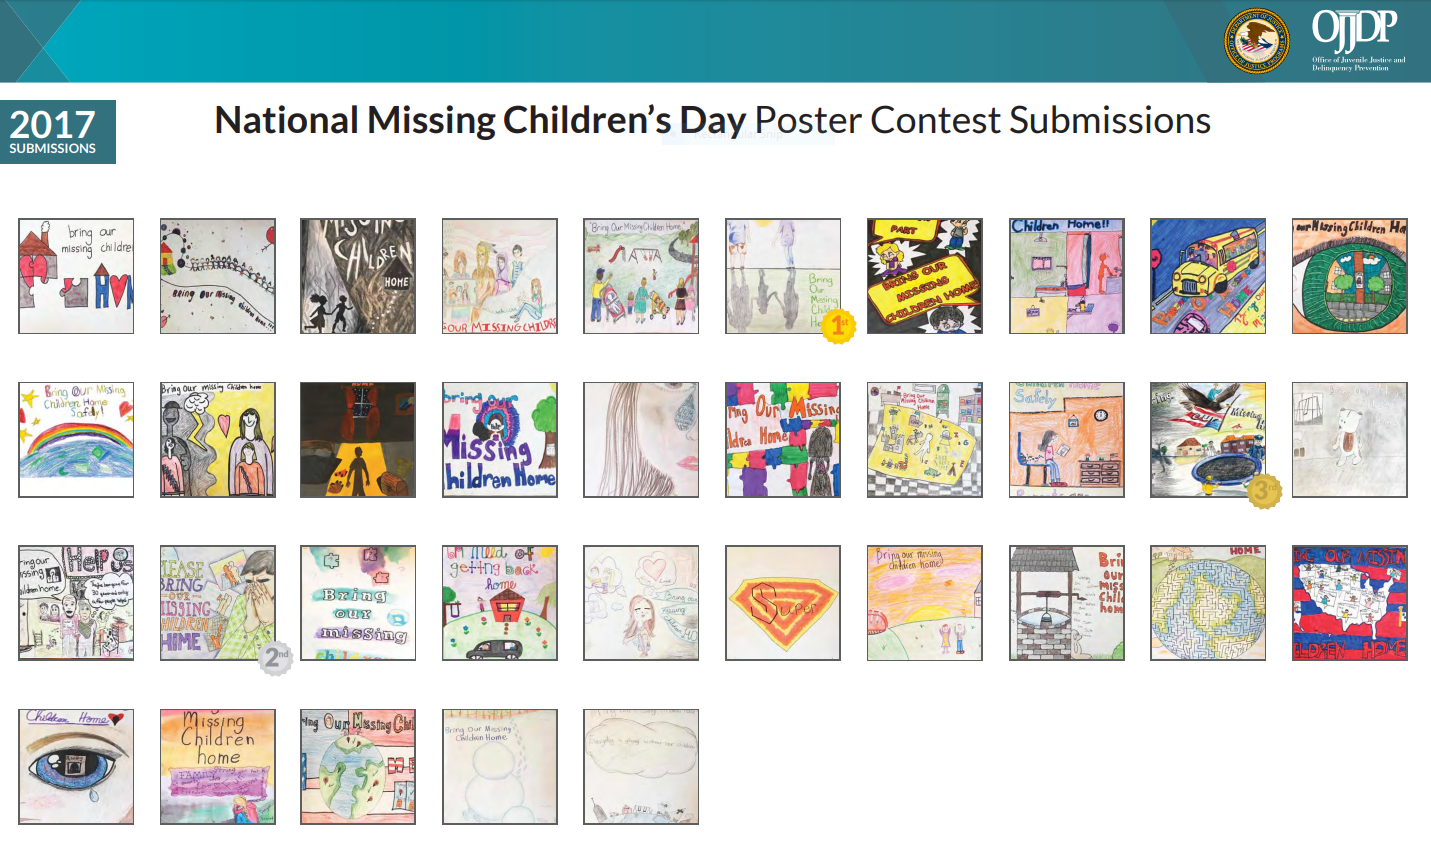 Missing Children's Day 2017 Poster Submissions